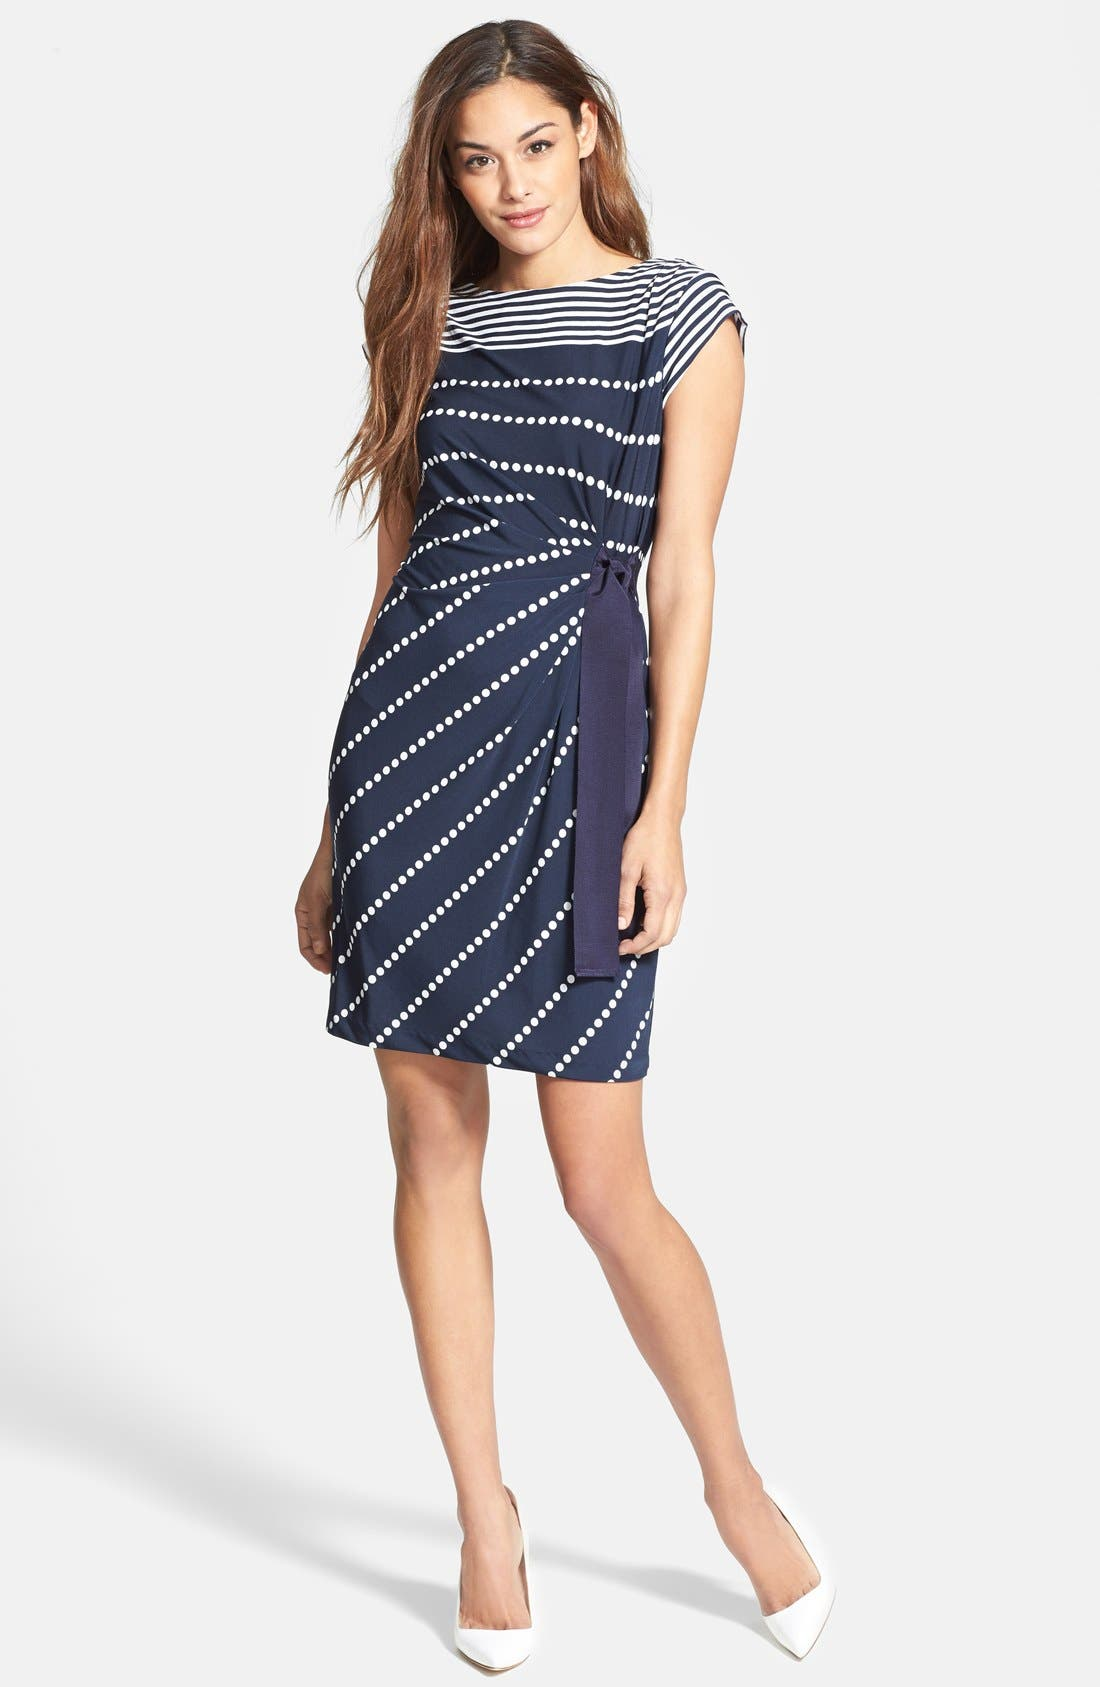 Alternate Image 1 Selected - Taylor Dresses Side Tie Print Jersey Sheath Dress (Petite)